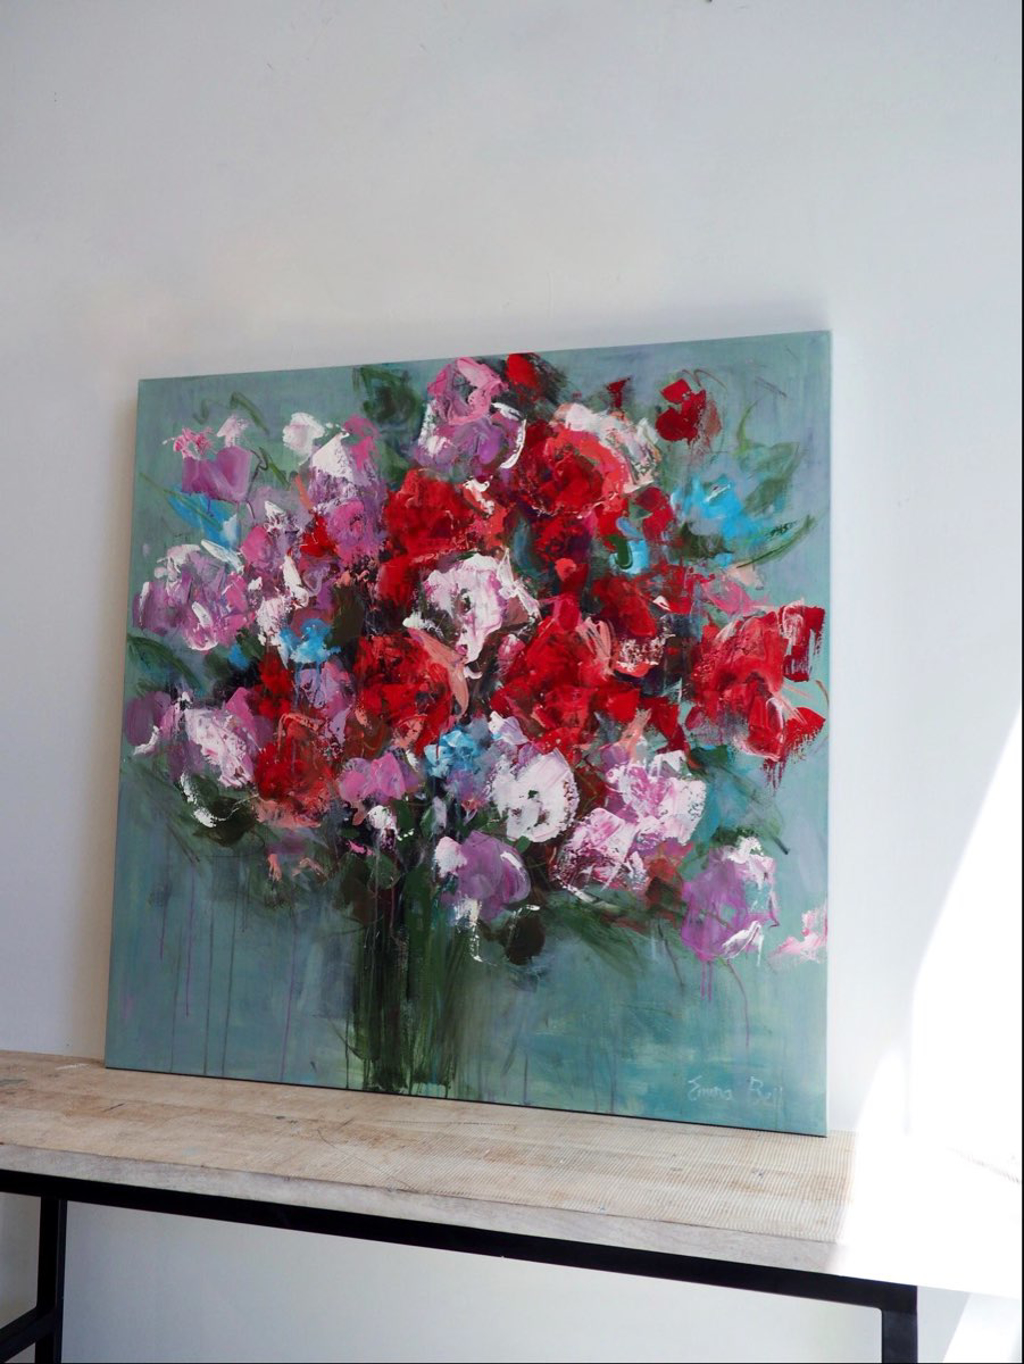 Red Flowers by Emma Bell